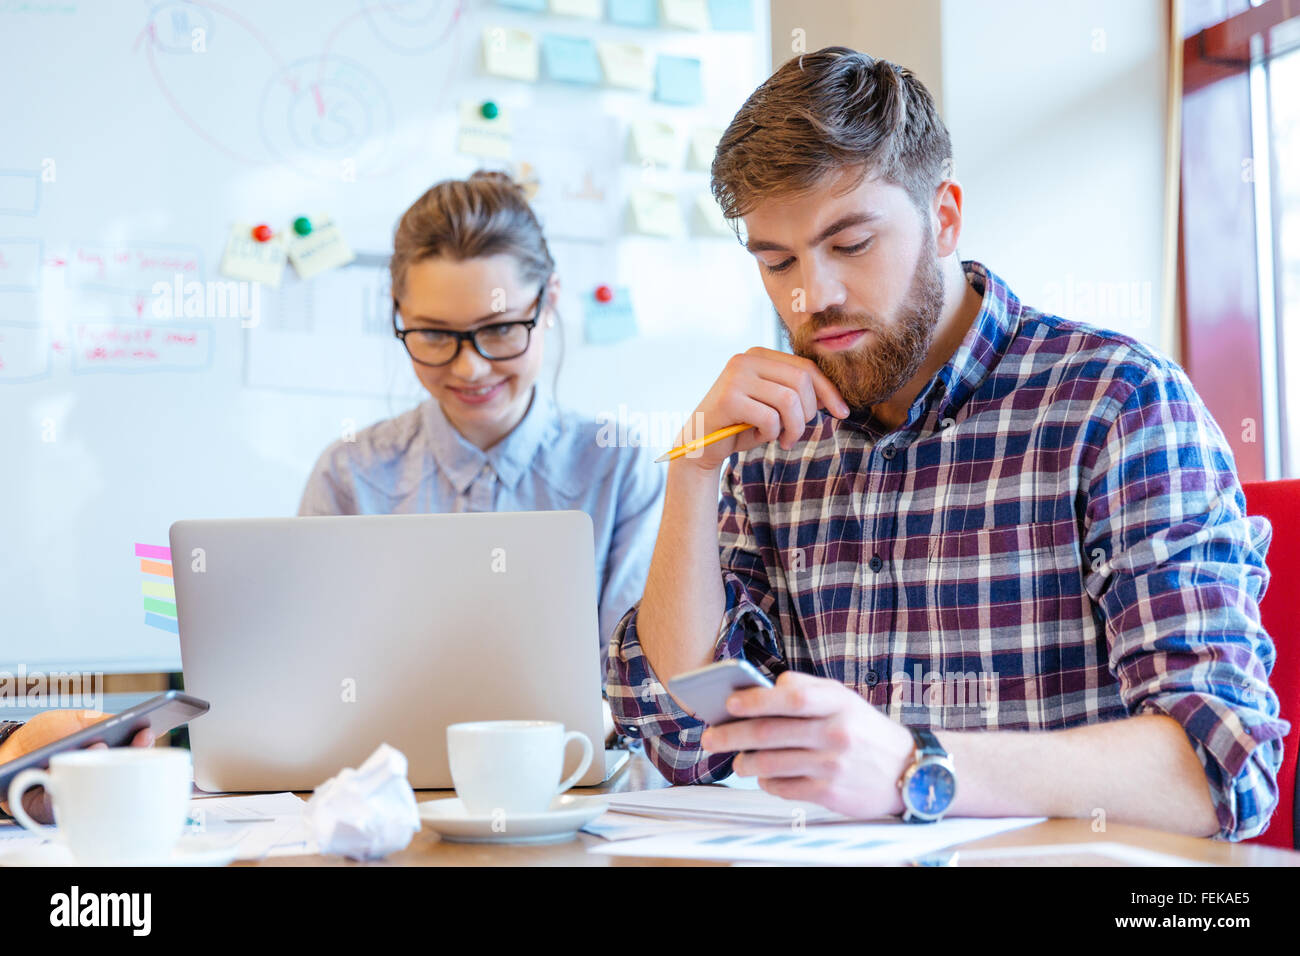 Young business people working in office - Stock Image